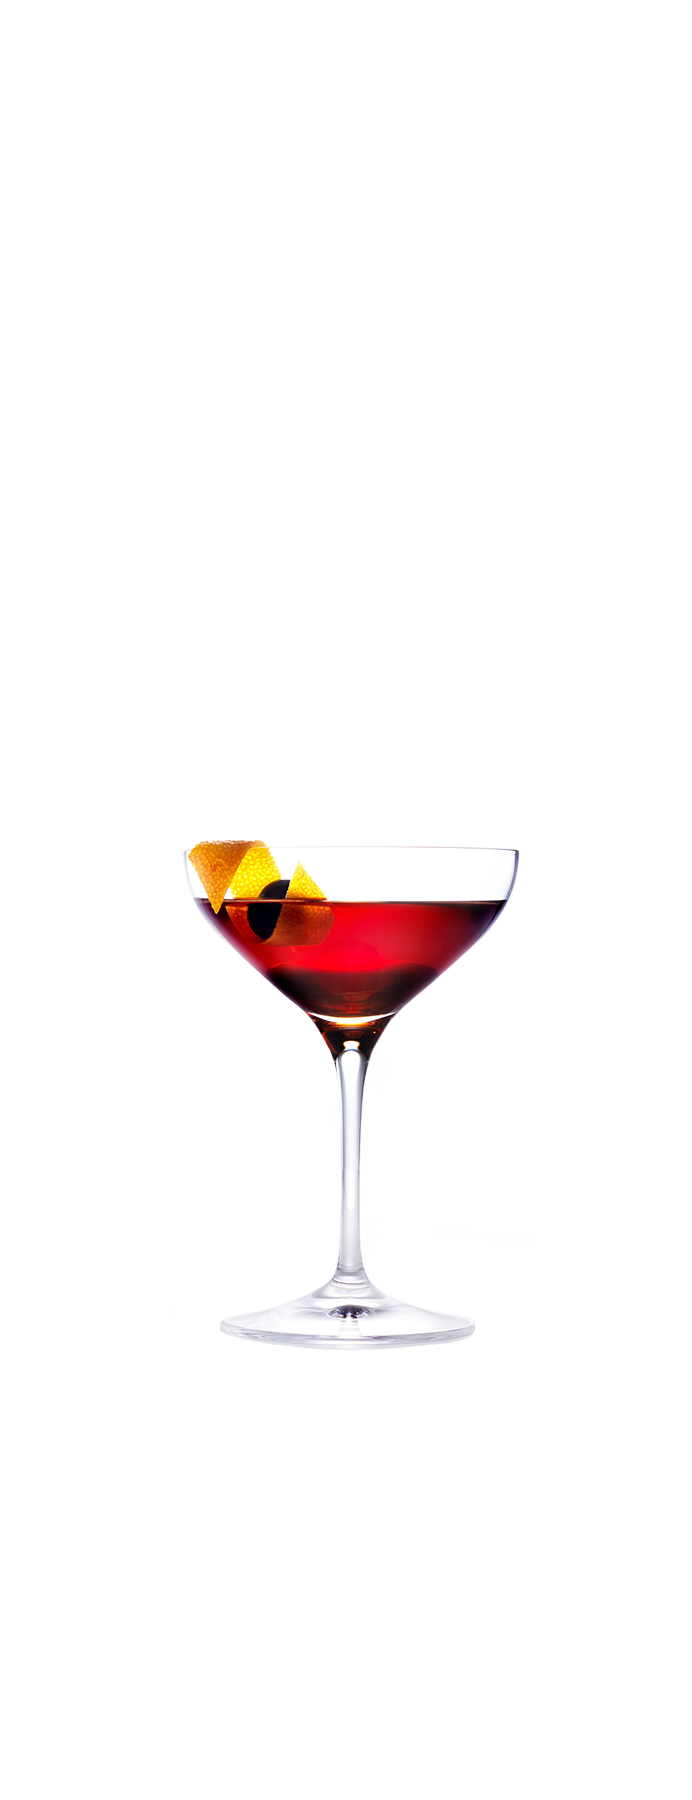 Explore METAXA 7 Stars neat,  on ice or in classic cocktails.